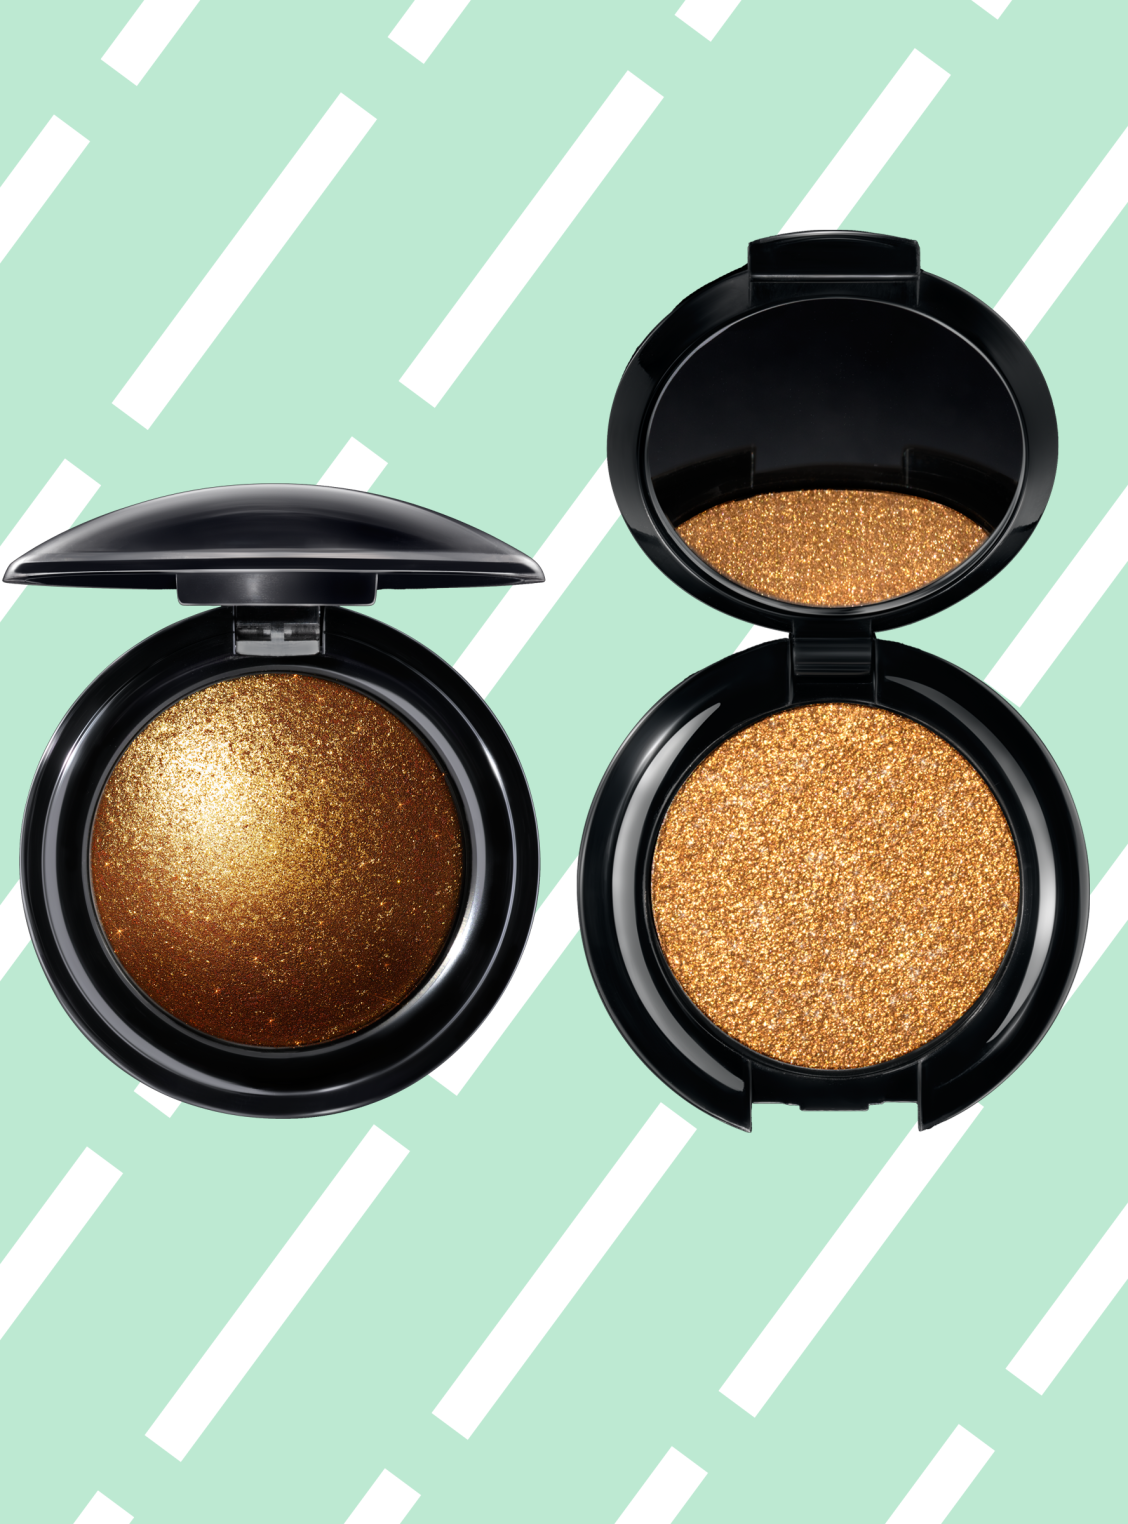 You'll SHINE with these eyeshadows!